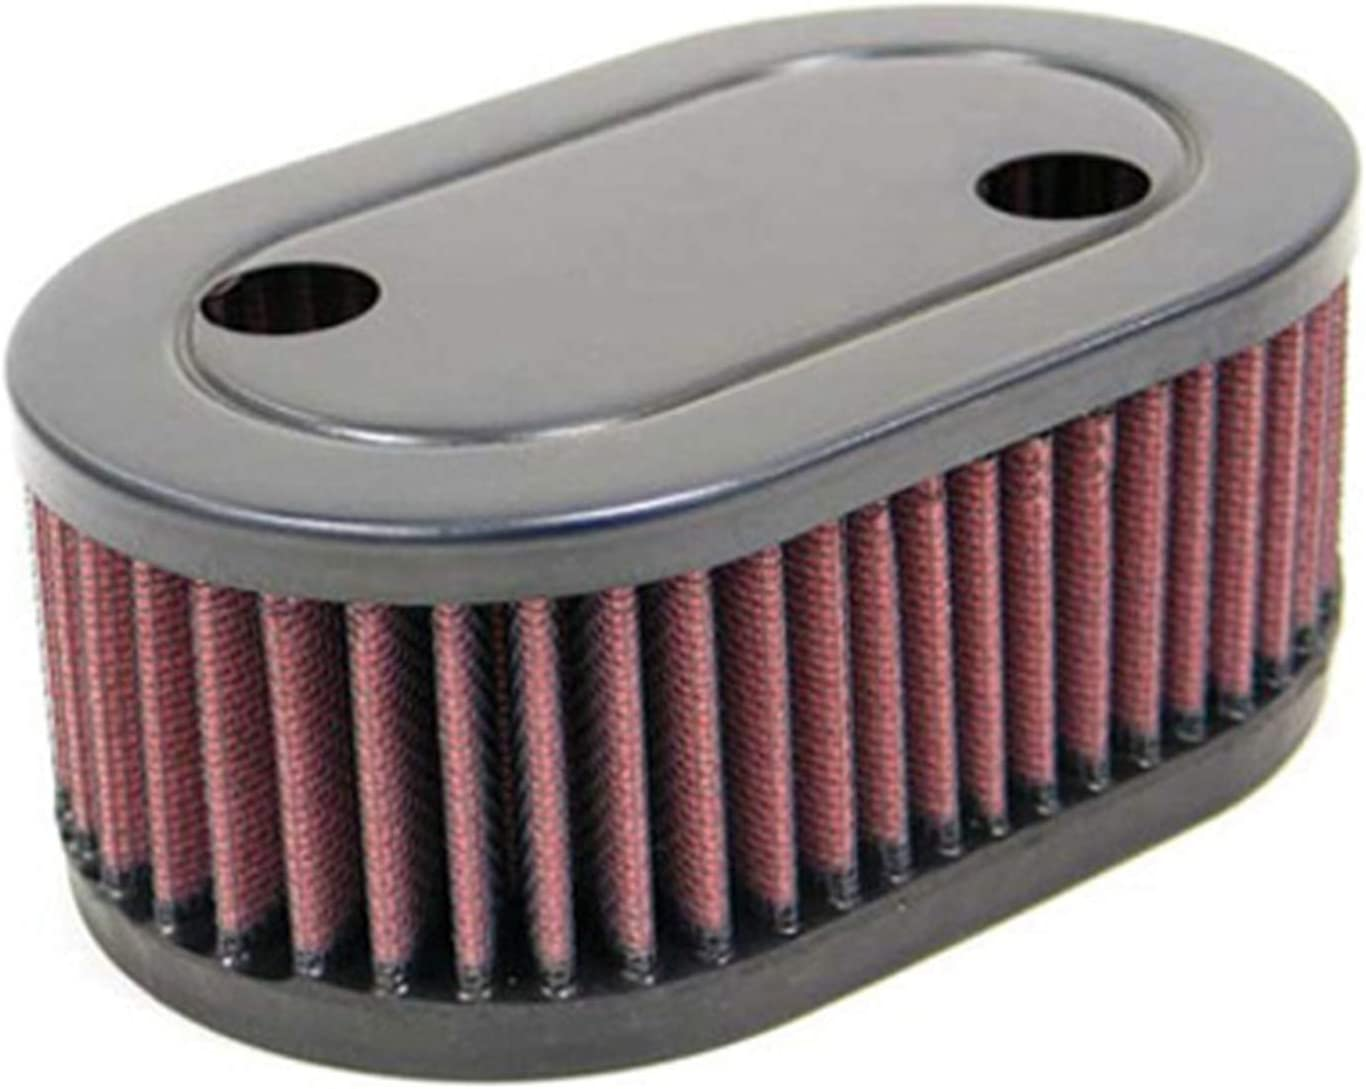 High Flow Air Filter Fits Ranking integrated 1st place Yamaha 1983 Mid-Virago Austin Mall XV920M